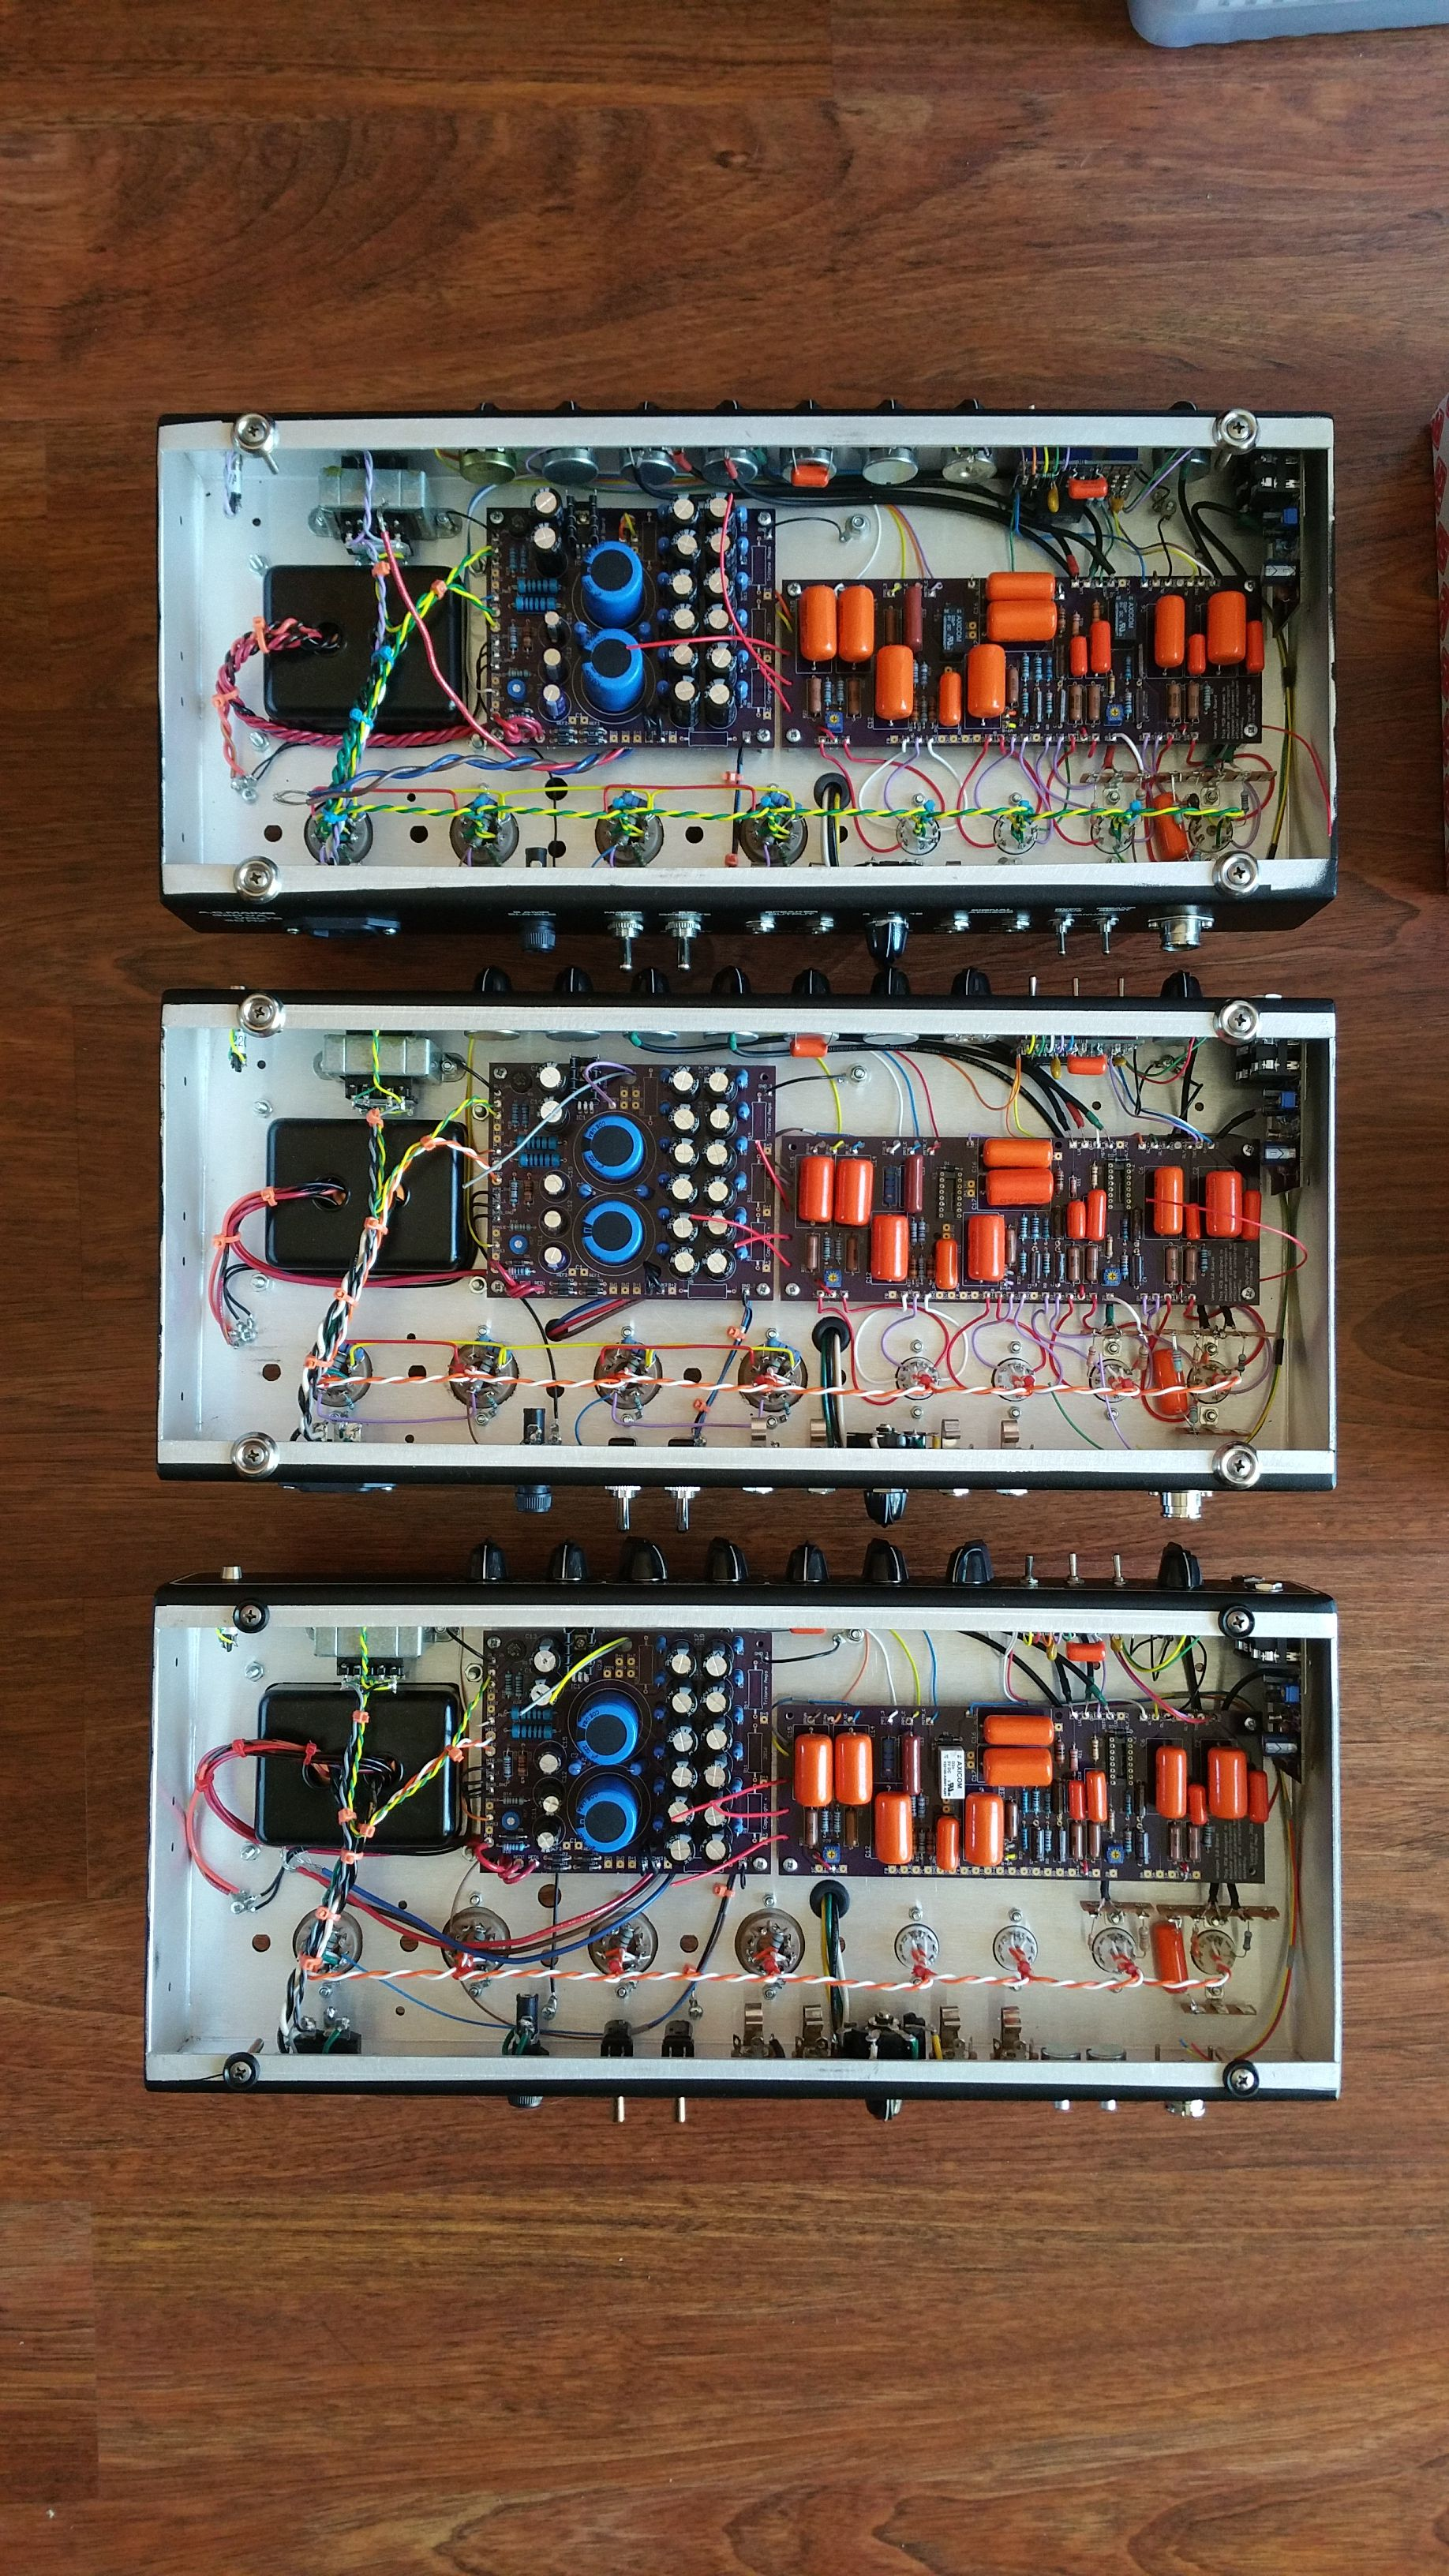 building 3 dumble overdrive special clones new generation design comes with dumbleator loop and [ 1836 x 3264 Pixel ]